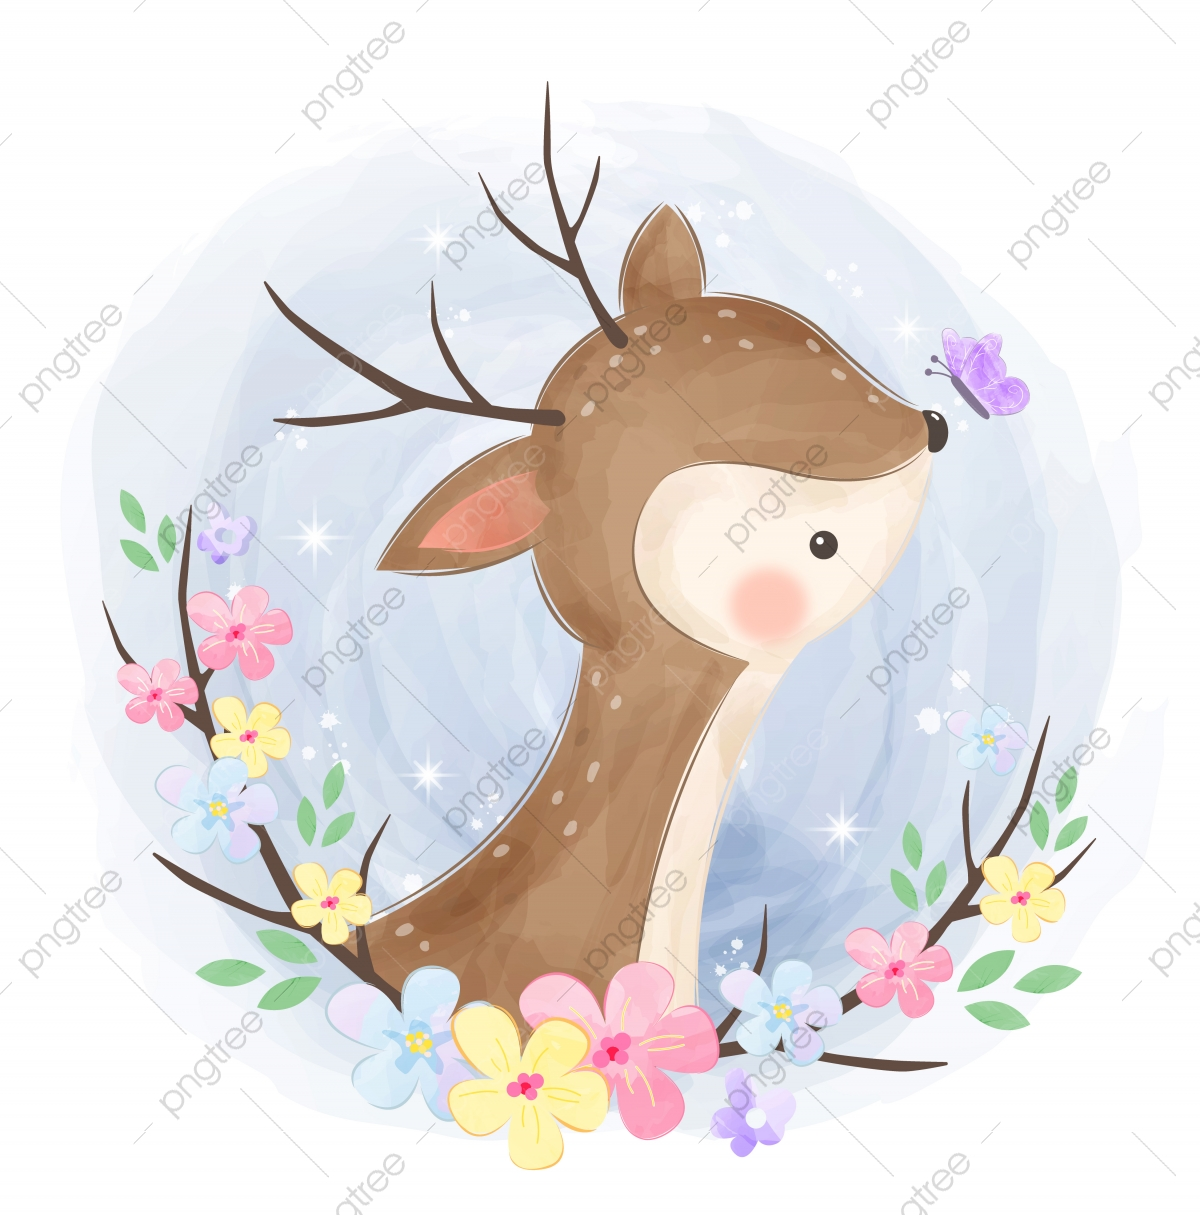 Cute Baby Deer Illustration Baby Shower Cartoon Cute Png And Vector With Transparent Background For Free Download